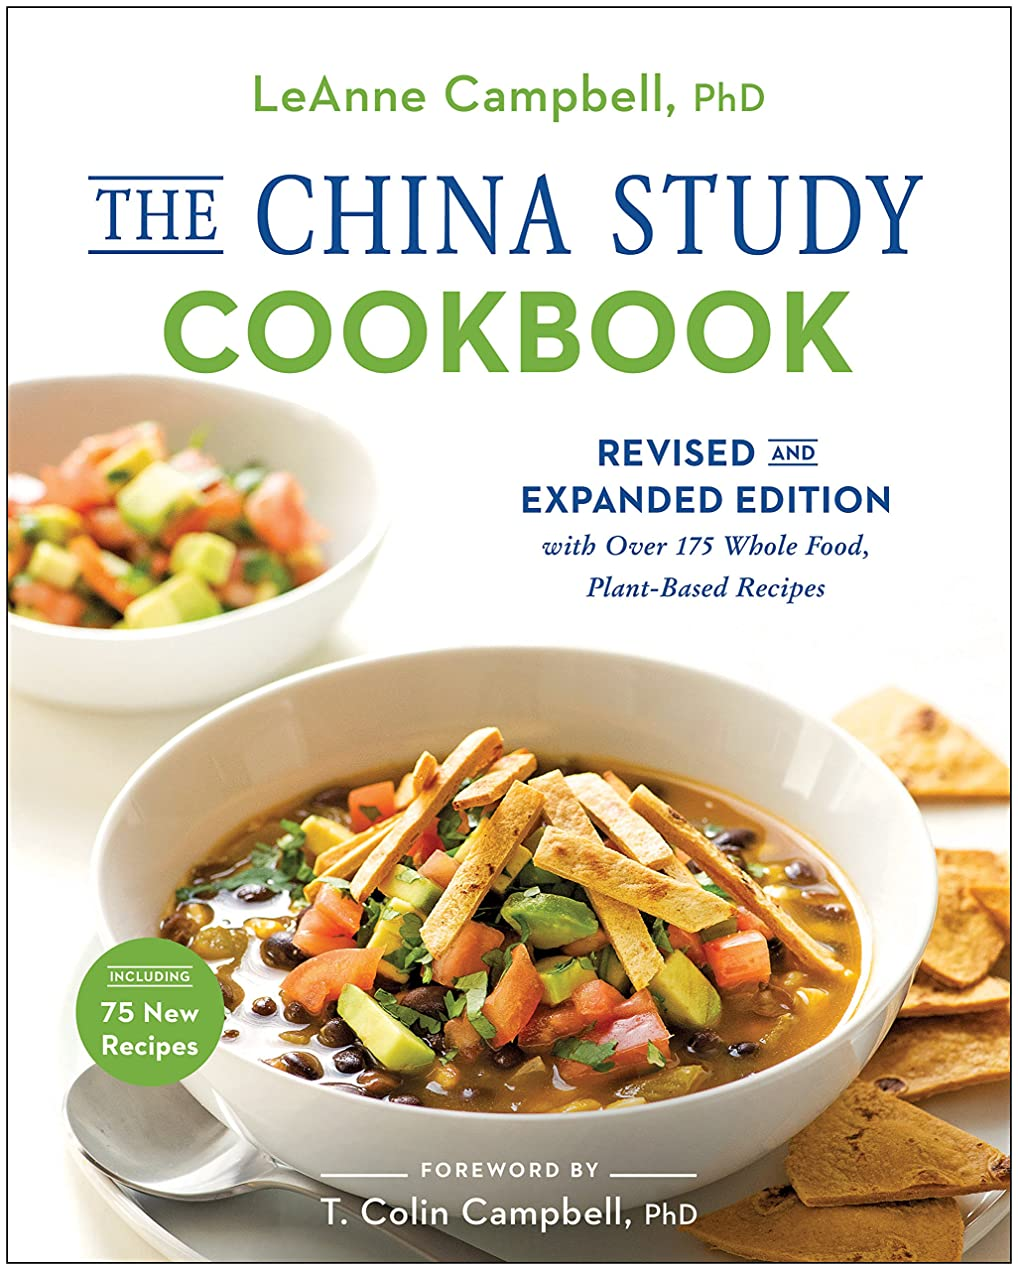 The China Study Cookbook: Revised and Expanded Edition with Over 175 Whole Food, Plant-Based Recipes (English Edition)